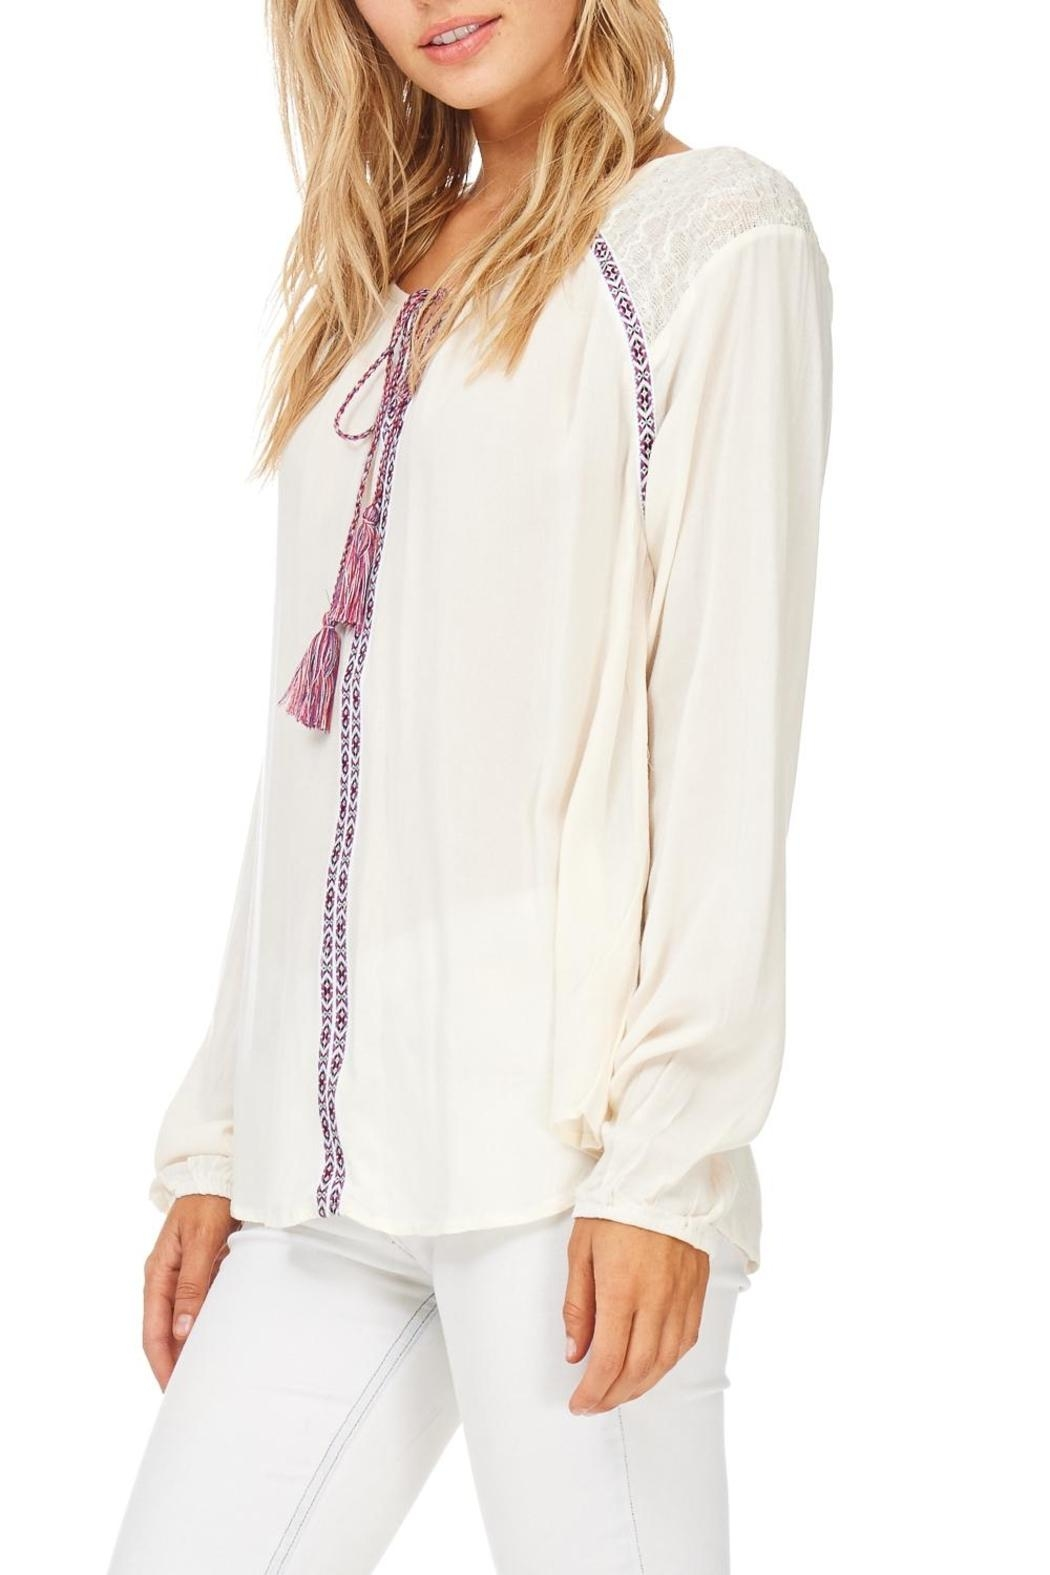 Hem & Thread Cream Embroidered Detail Blouse - Front Full Image